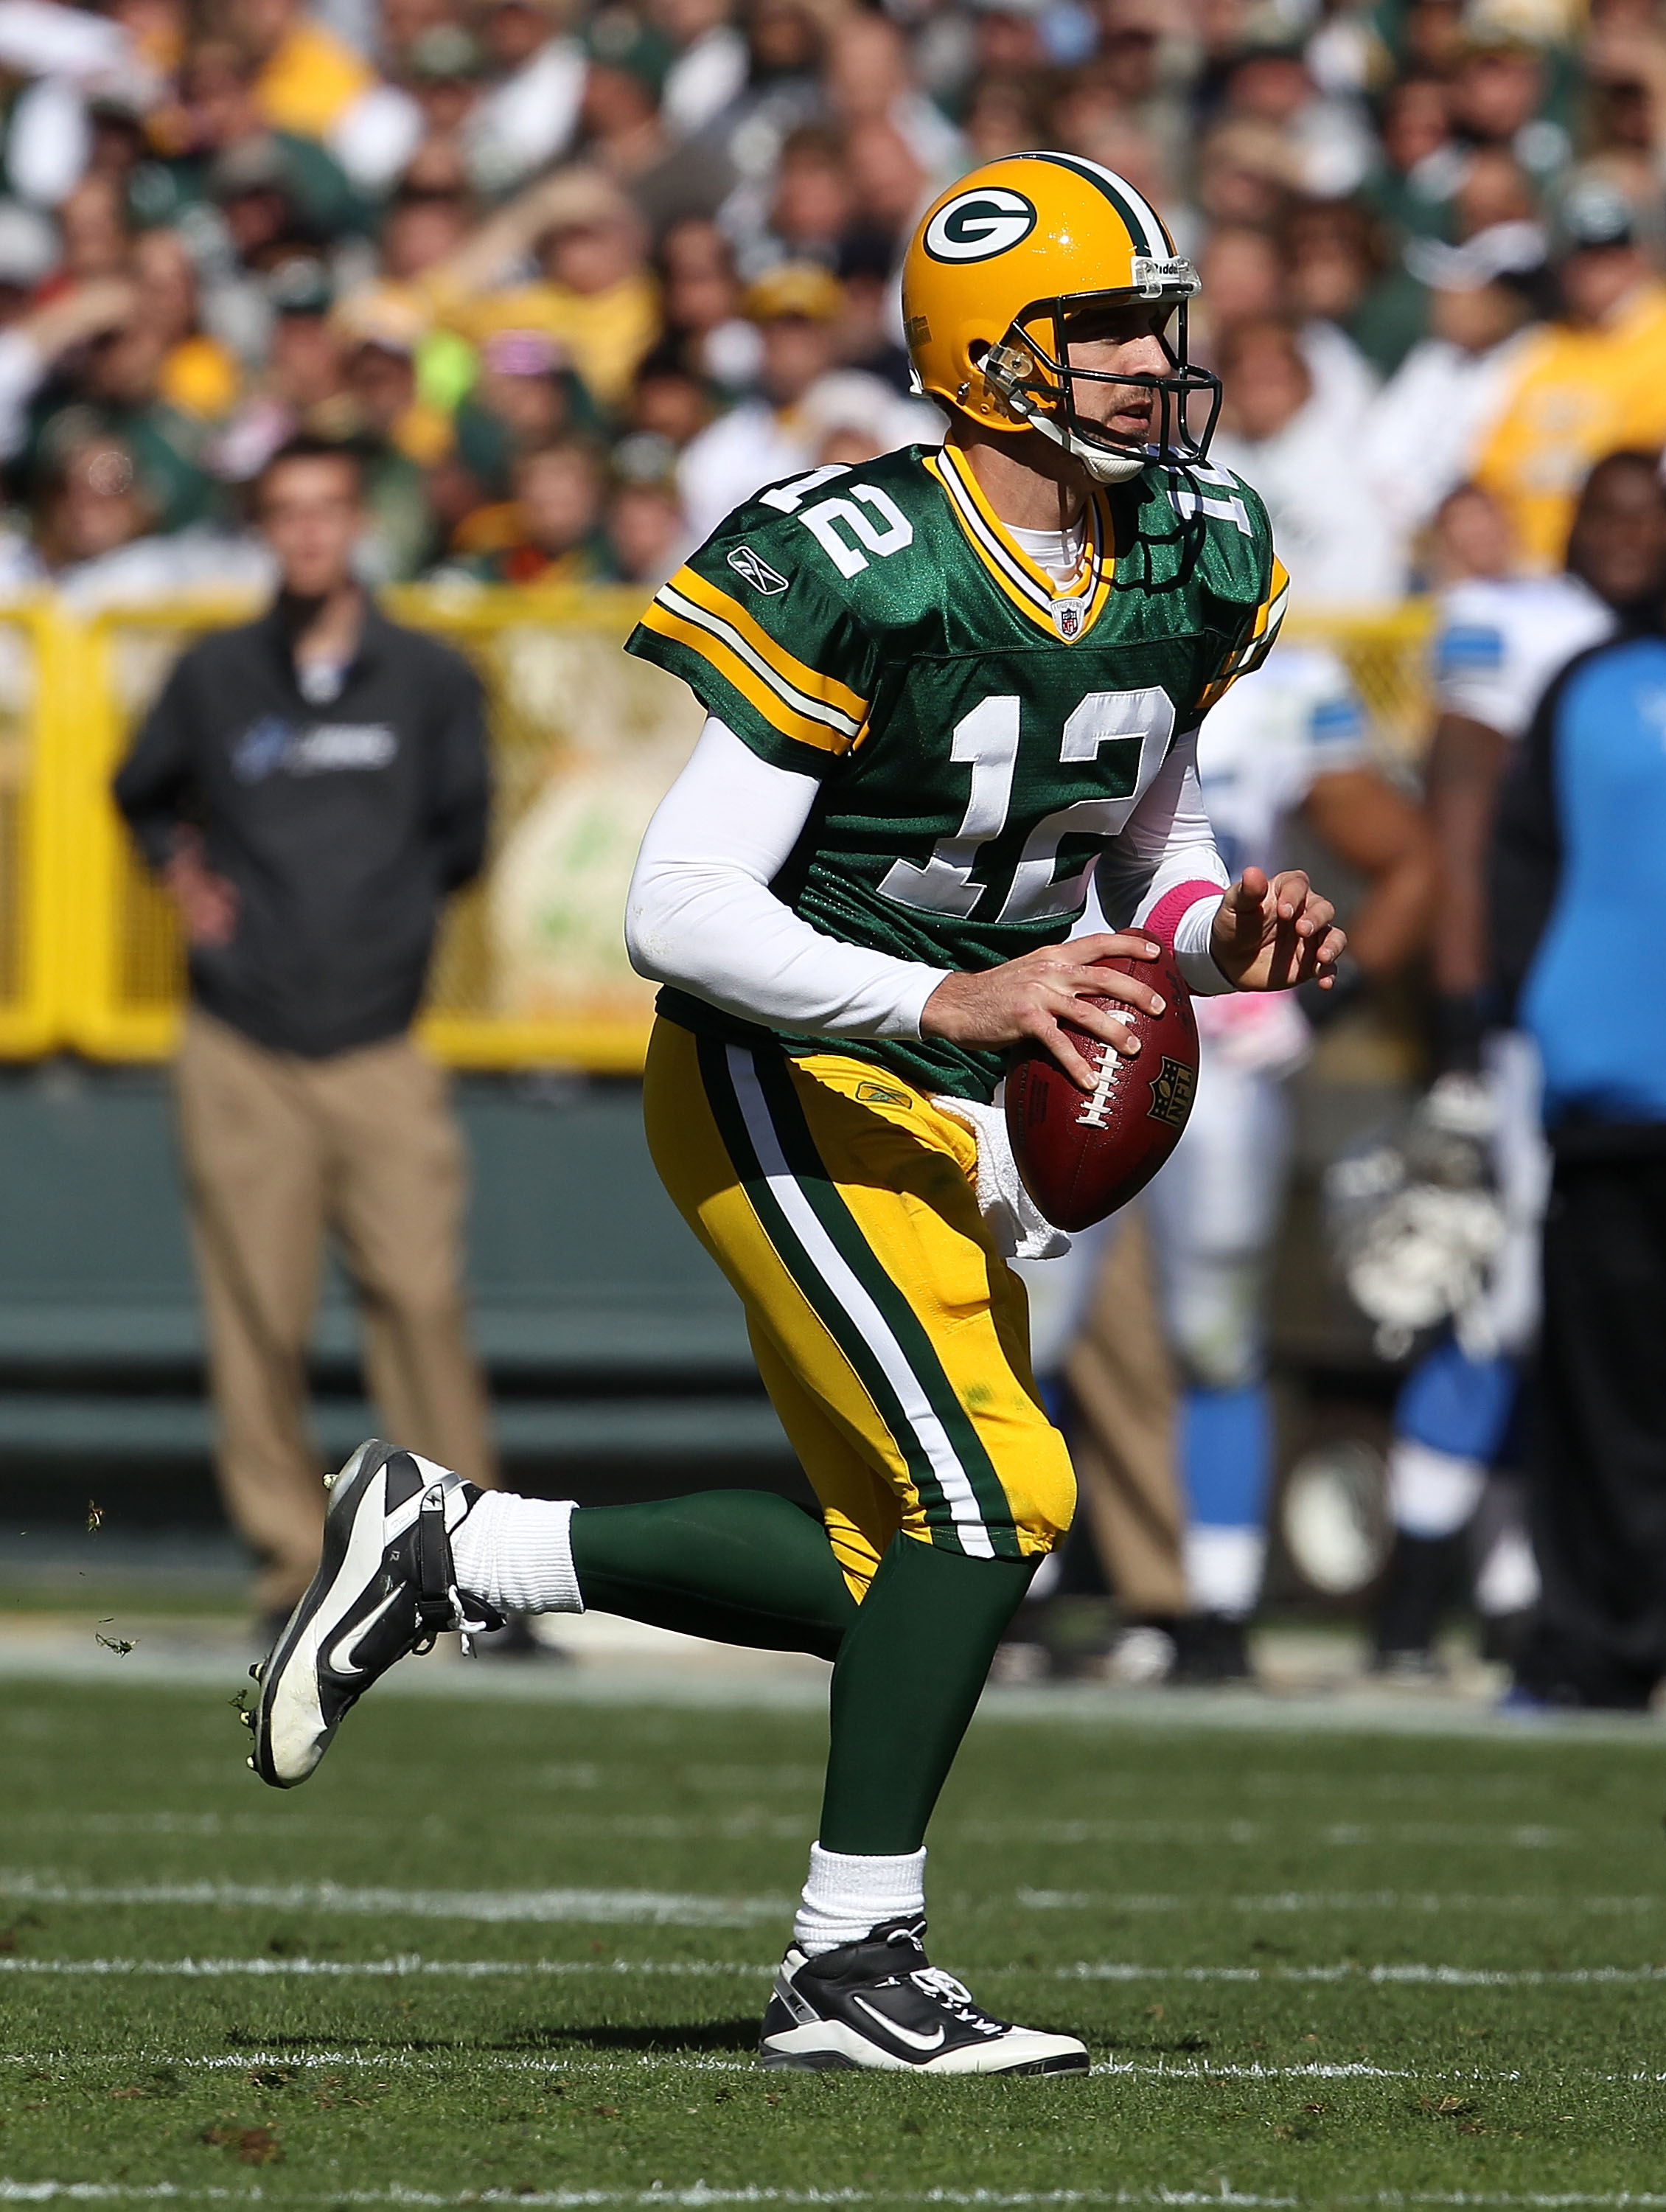 GREEN BAY, WI - OCTOBER 03: Aaron Rodgers #12 of the Green Bay Packers rolls out to look for a receiver against the Detroit Lions at Lambeau Field on October 3, 2010 in Green Bay, Wisconsin. The Packers defeated the Lions 28-26. (Photo by Jonathan Daniel/